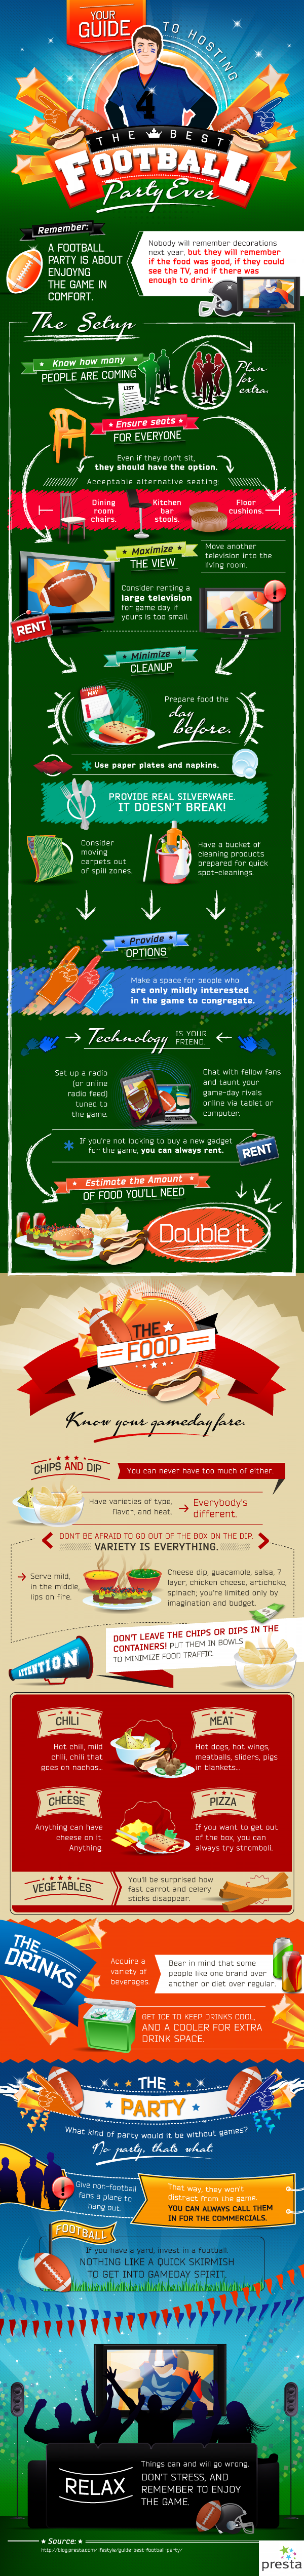 Guide To Hosting The Best Football Party Ever Infographic